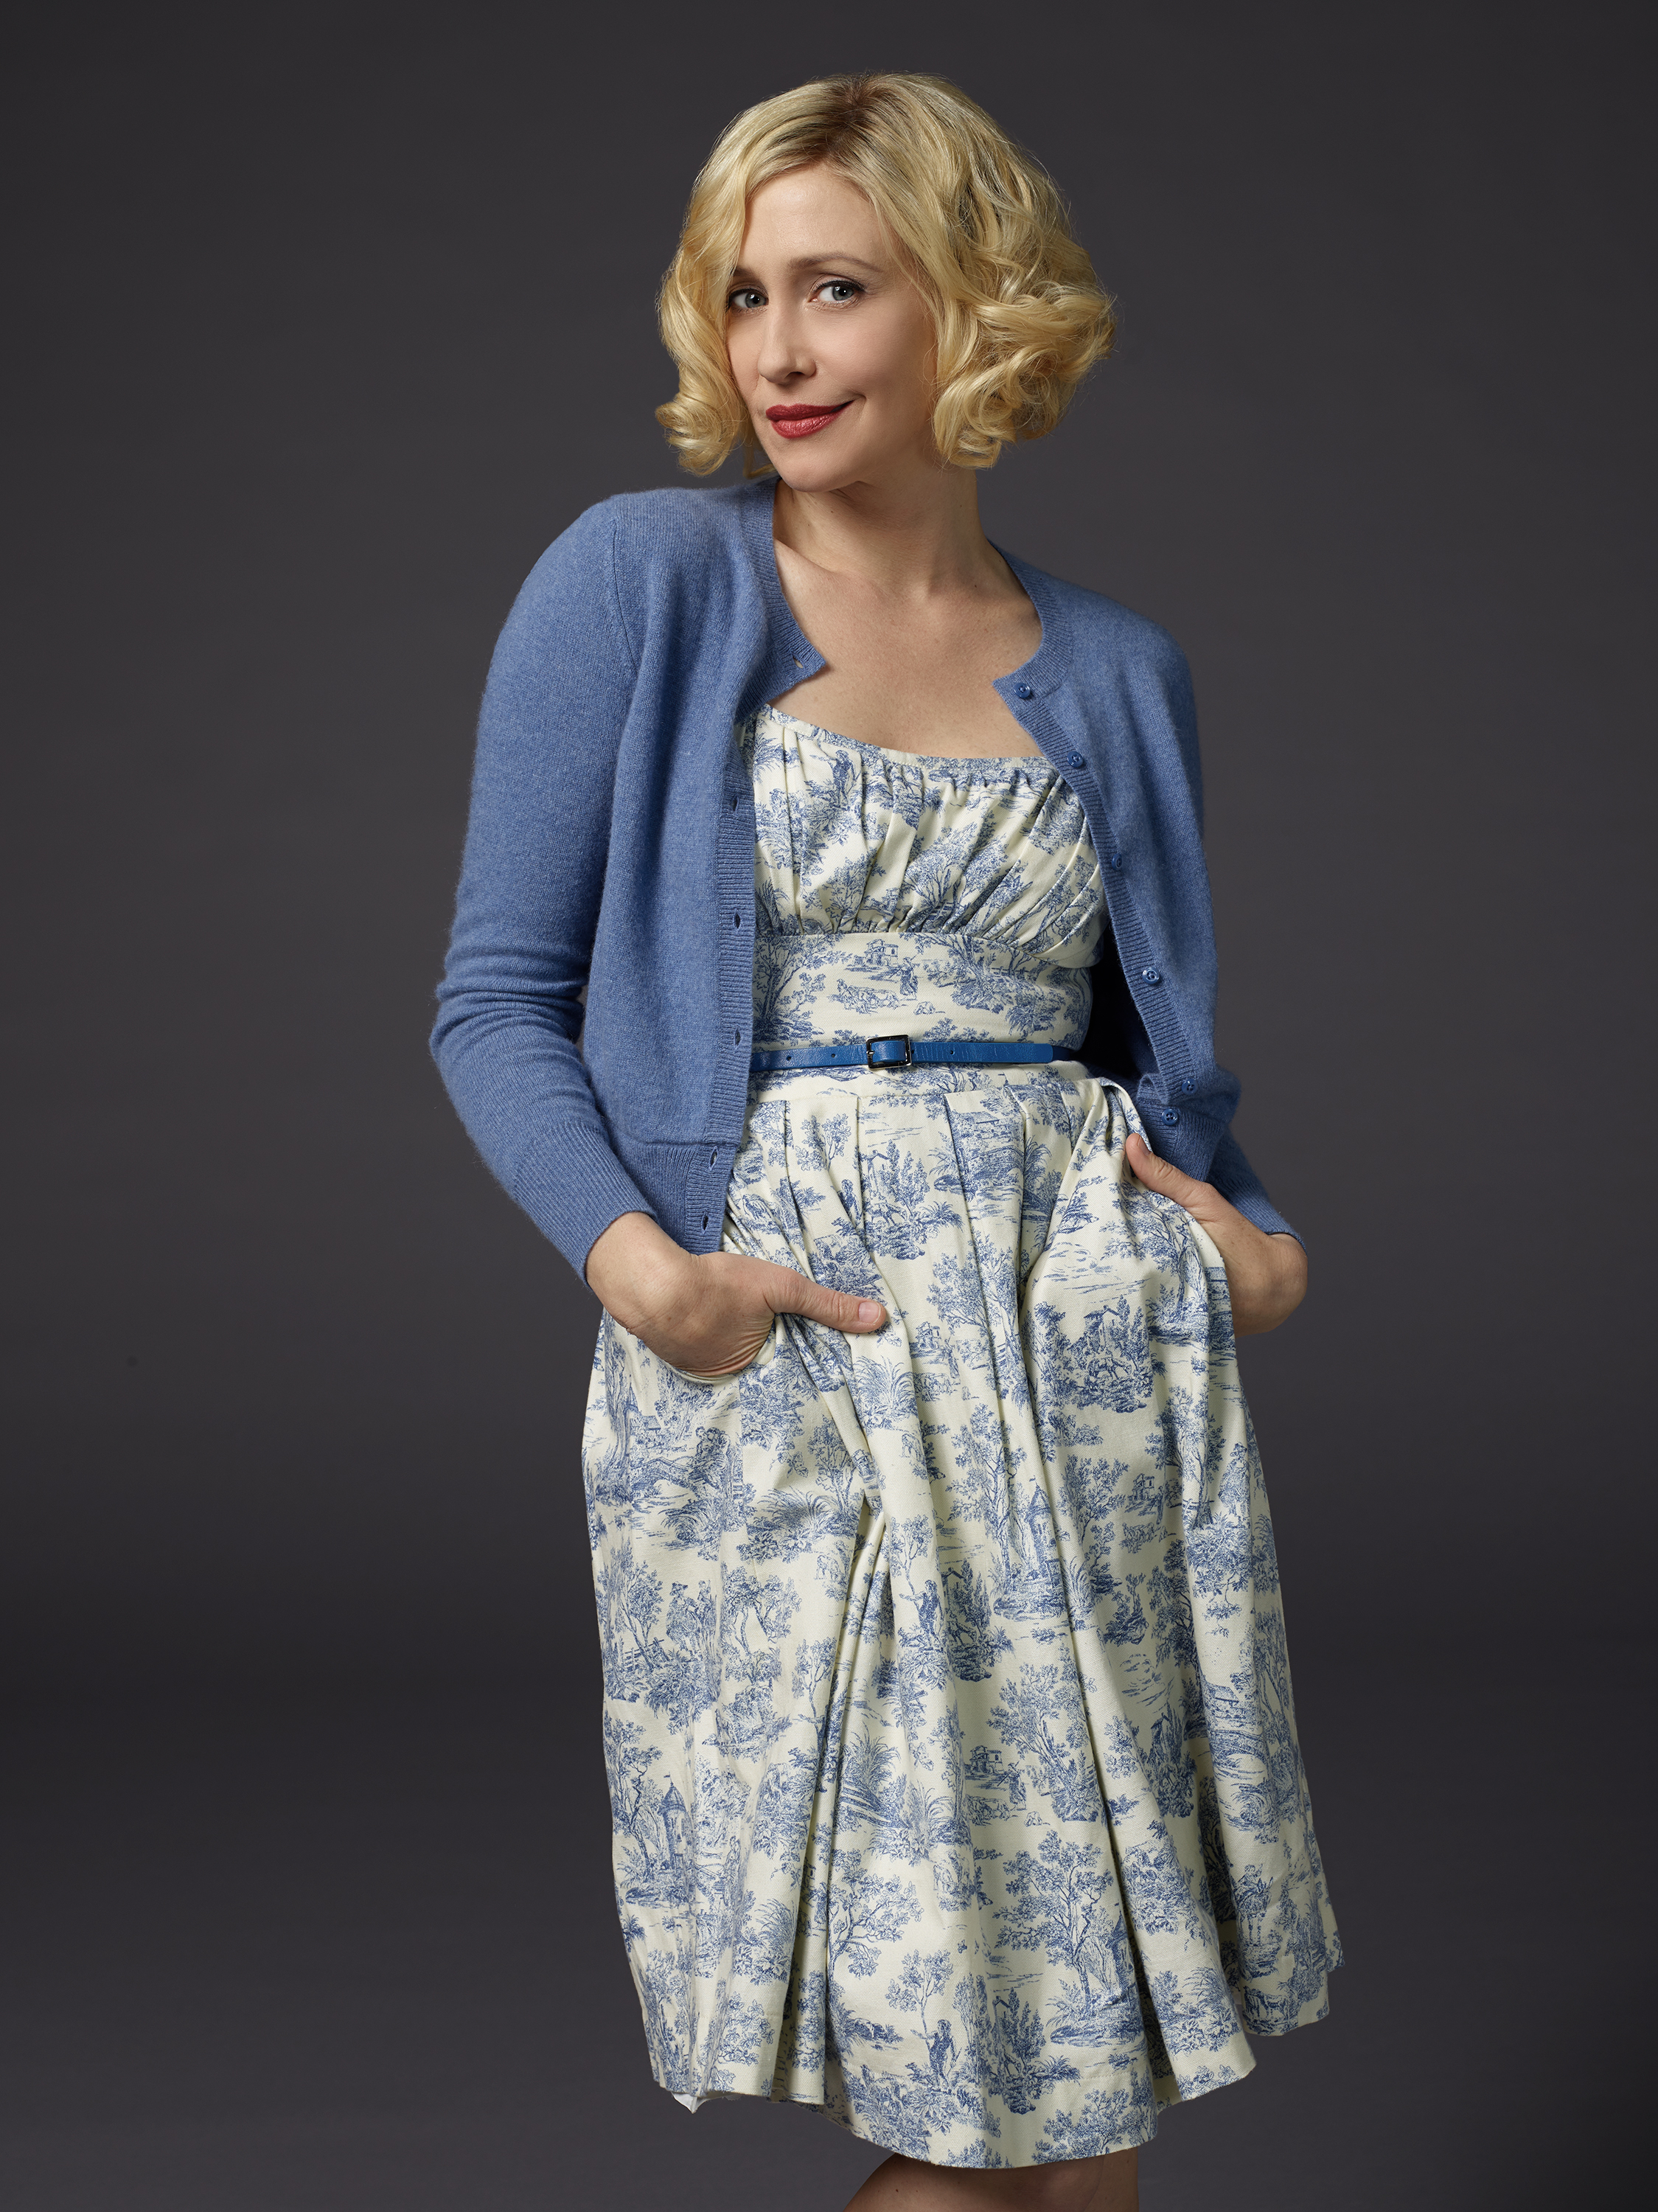 Bates Motel Season 3 Norma Bates Official Pictures